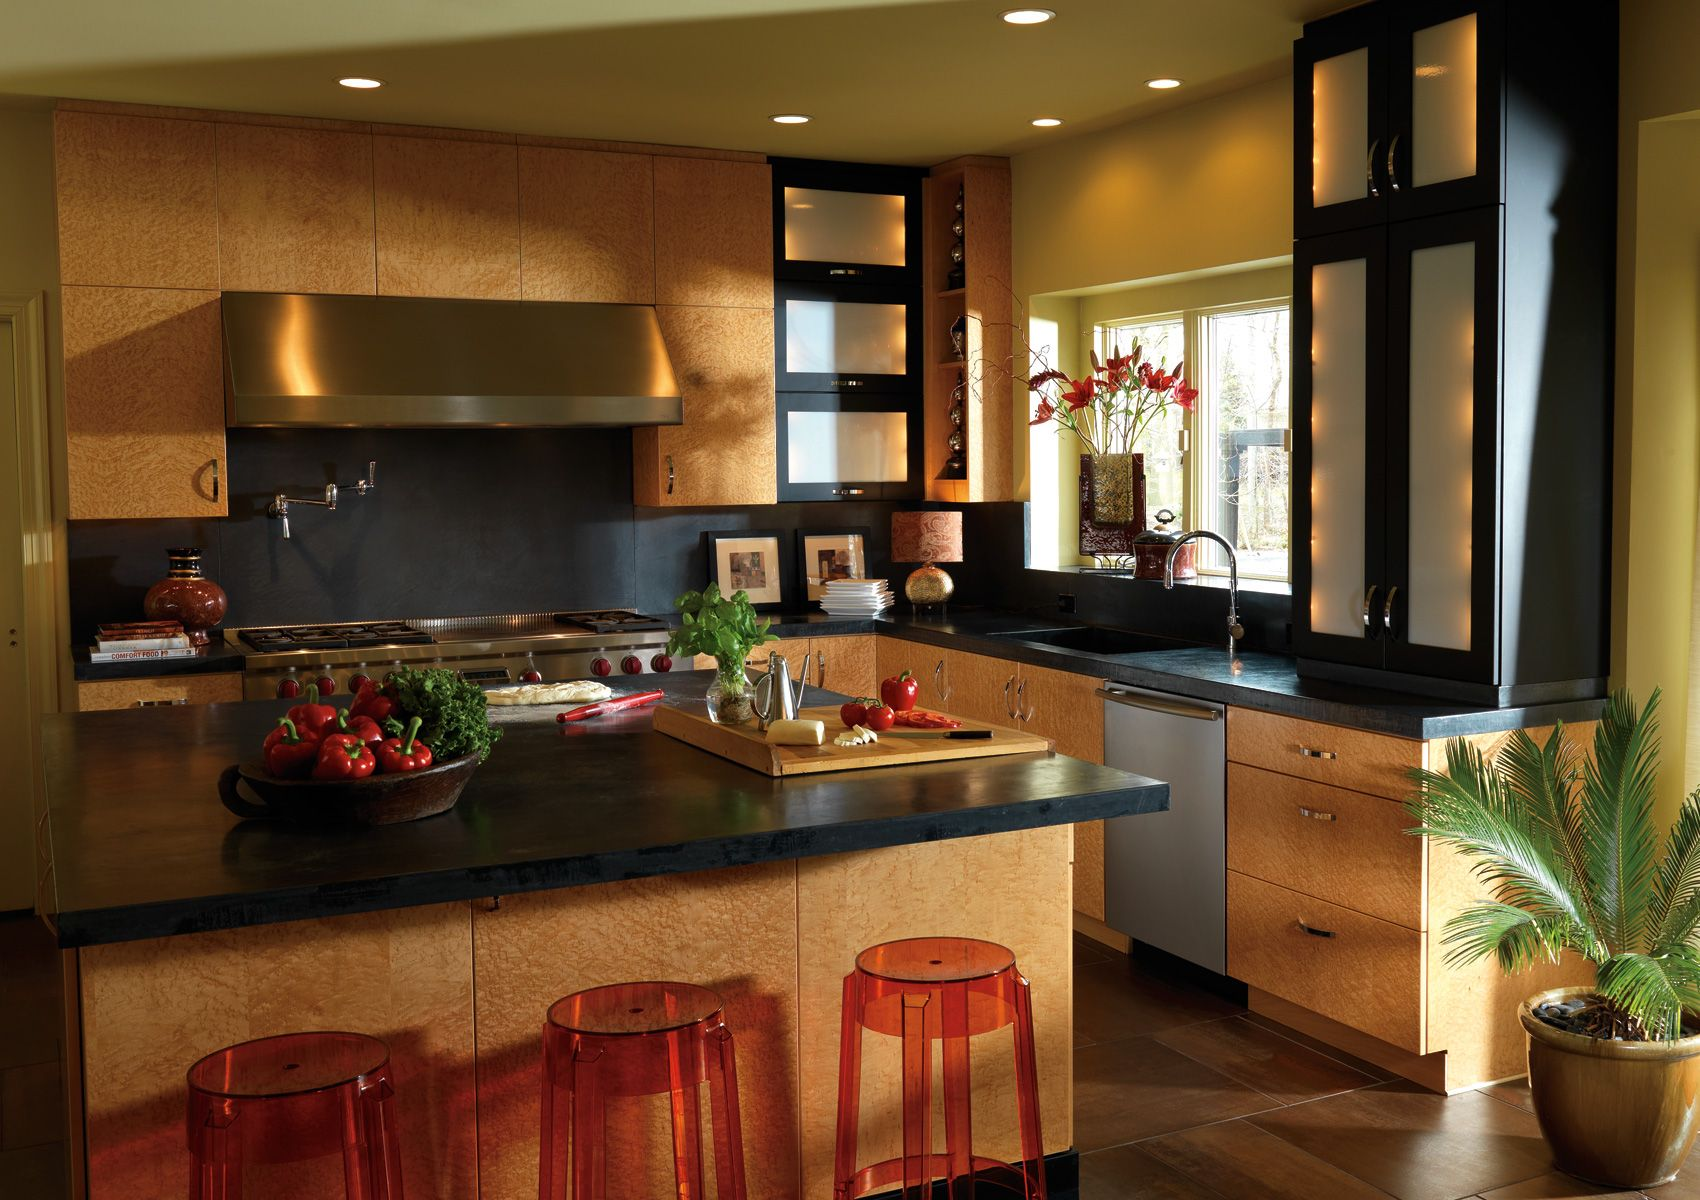 Forever After Kitchen Cabinets Plain Fancy Kitchen Inspiration Design Contemporary Kitchen Decor Contemporary Kitchen